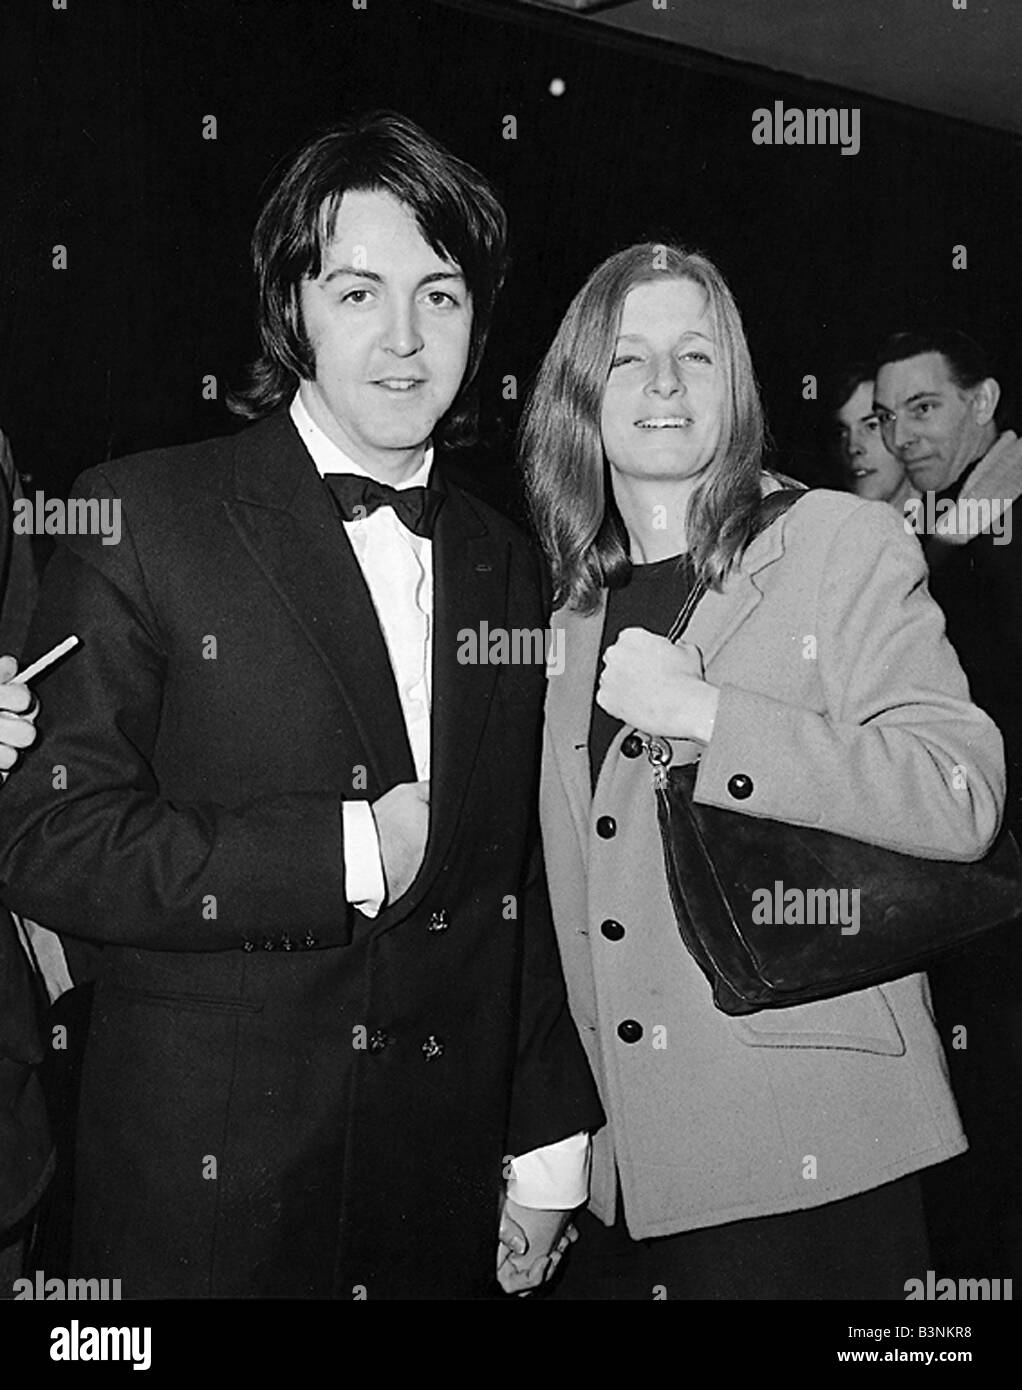 Beatles Files 1968 Paul McCartney With Wife Linda At Film Premiere Of Isadora March